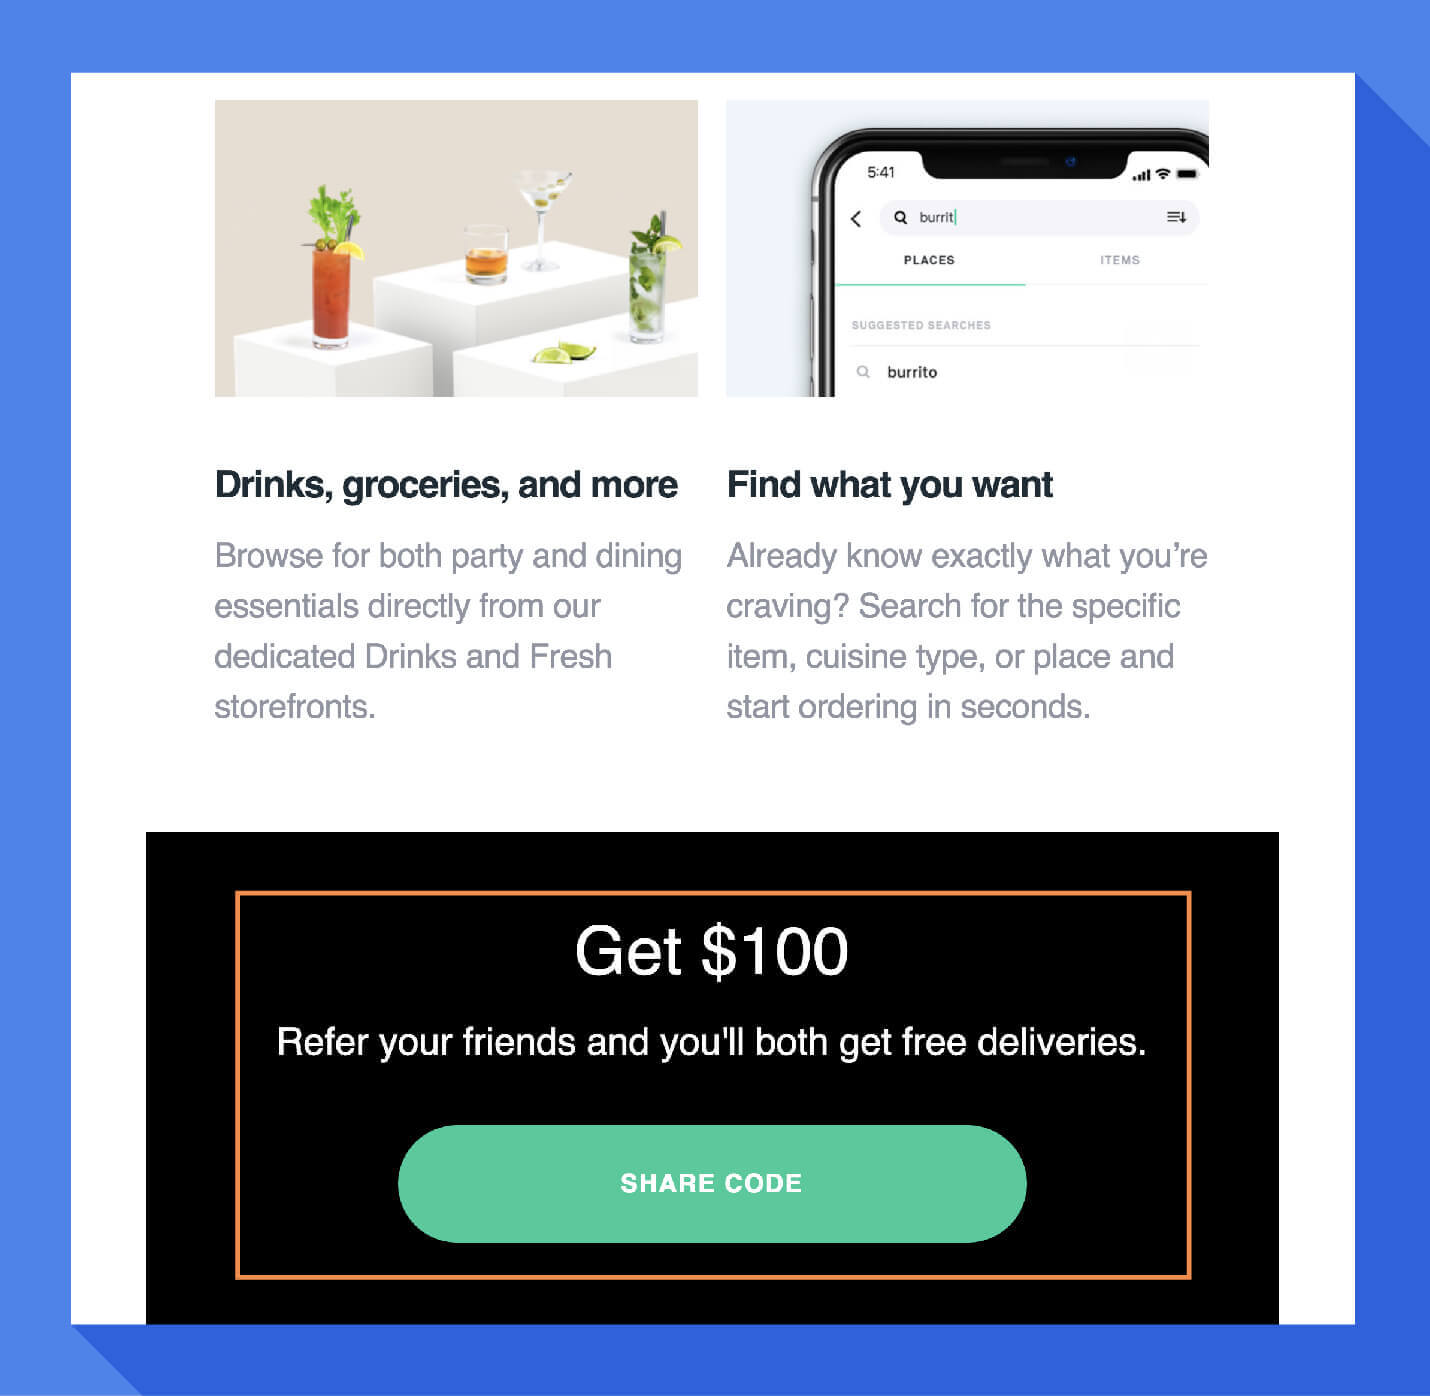 example referral marketing from postmates welcome message